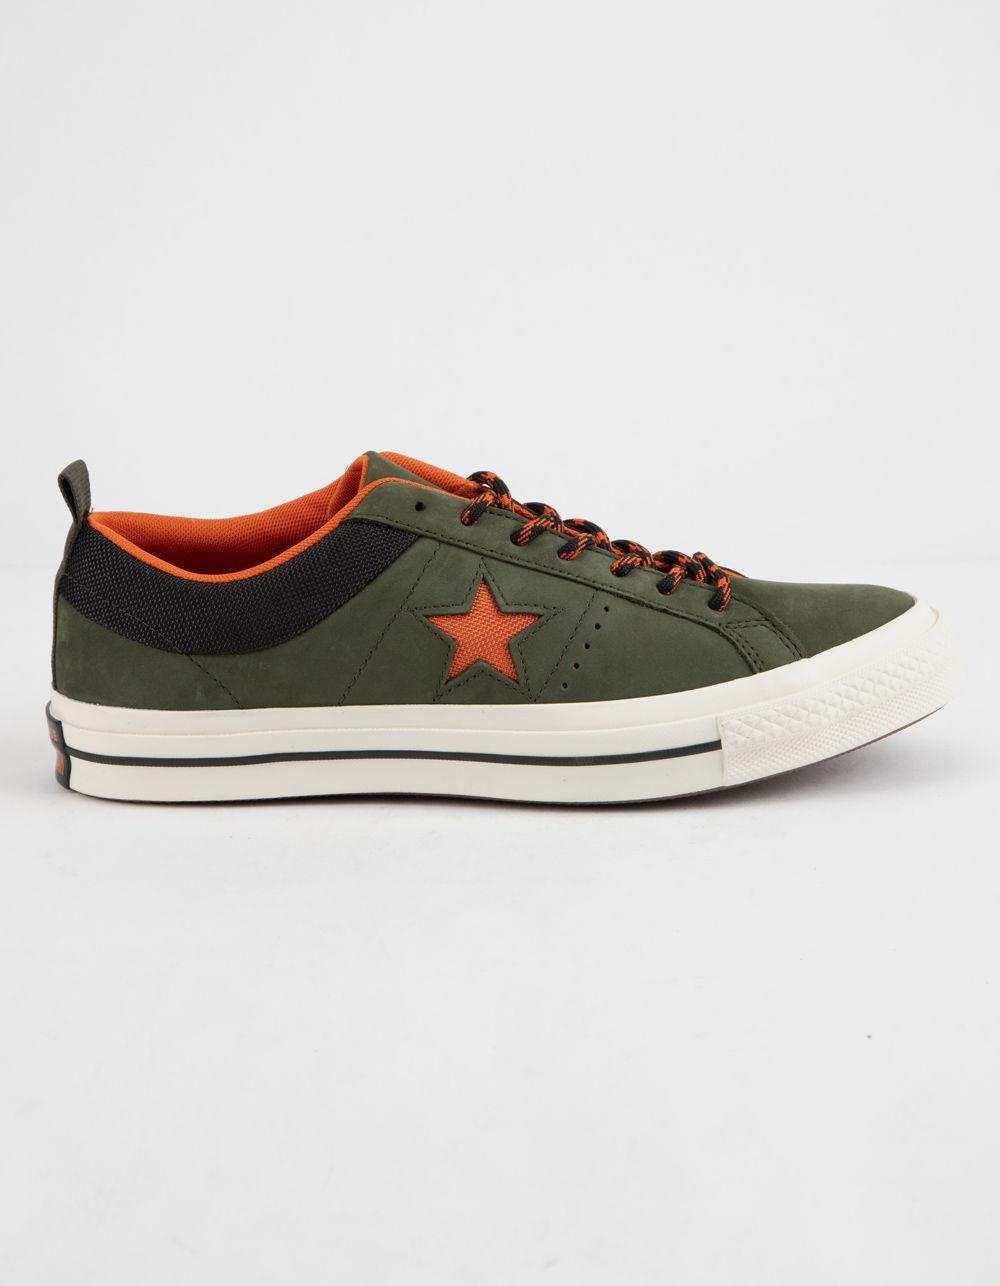 e6629527d79 Lyst - Converse One Star Ox Sierra Low Top Shoes in Green